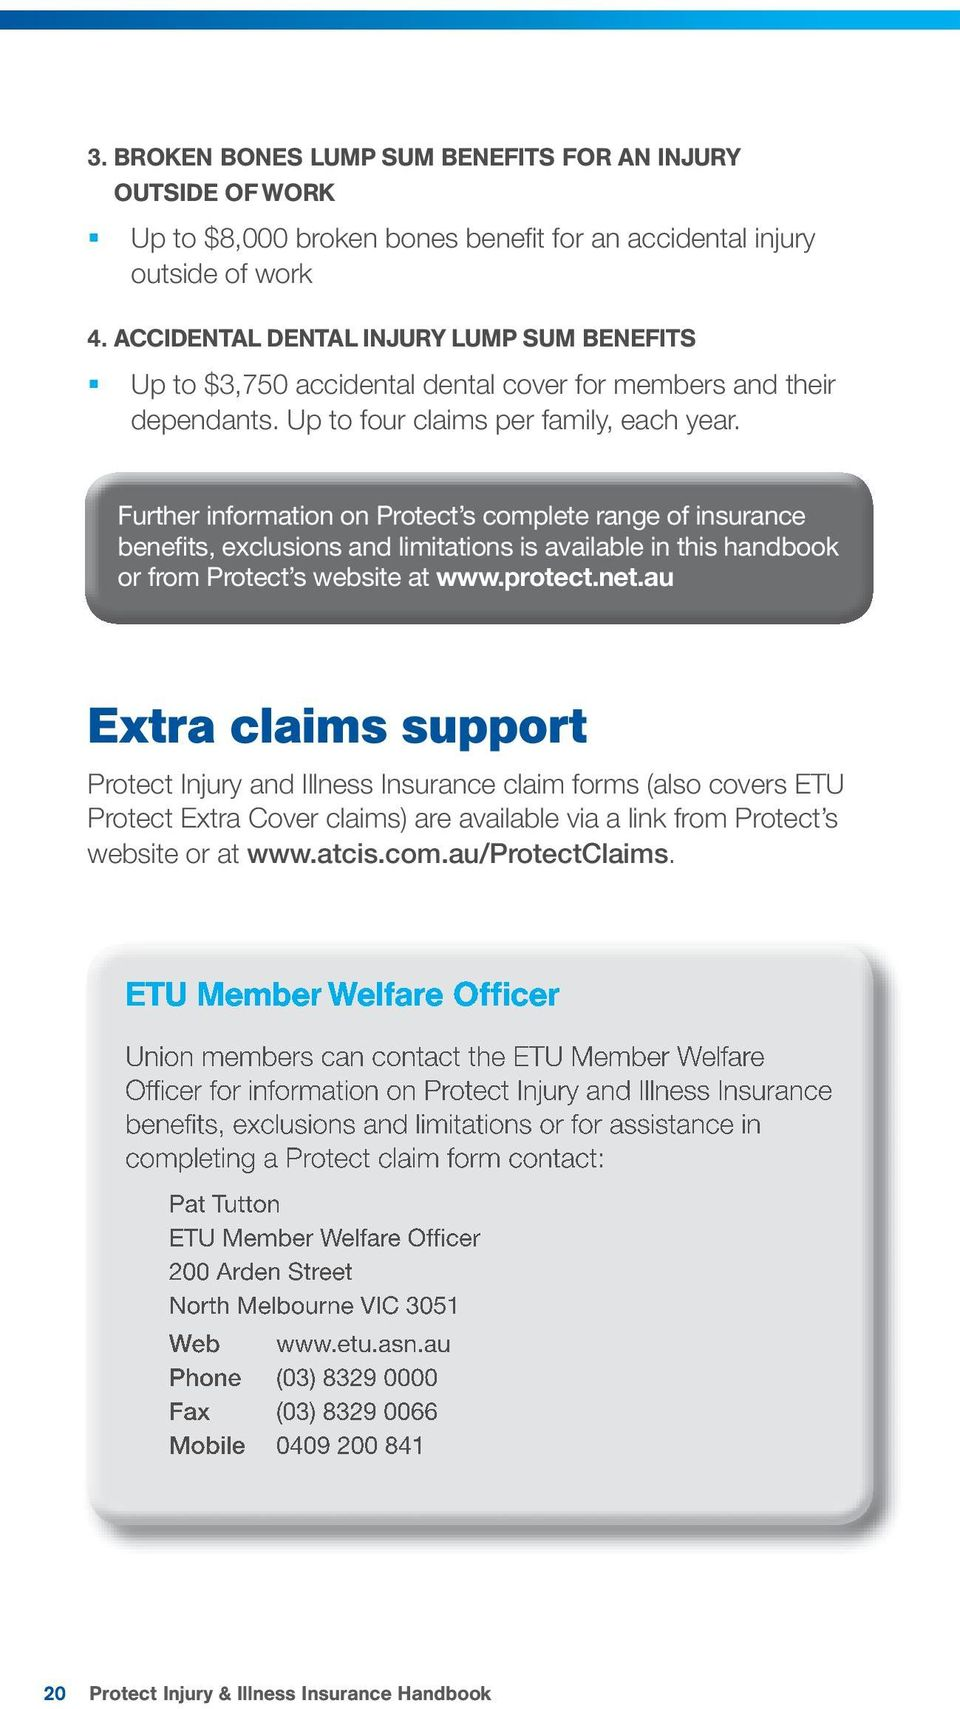 Further information on Protect s complete range of insurance benefits, exclusions and limitations is available in this handbook or from Protect s website at www.protect.net.